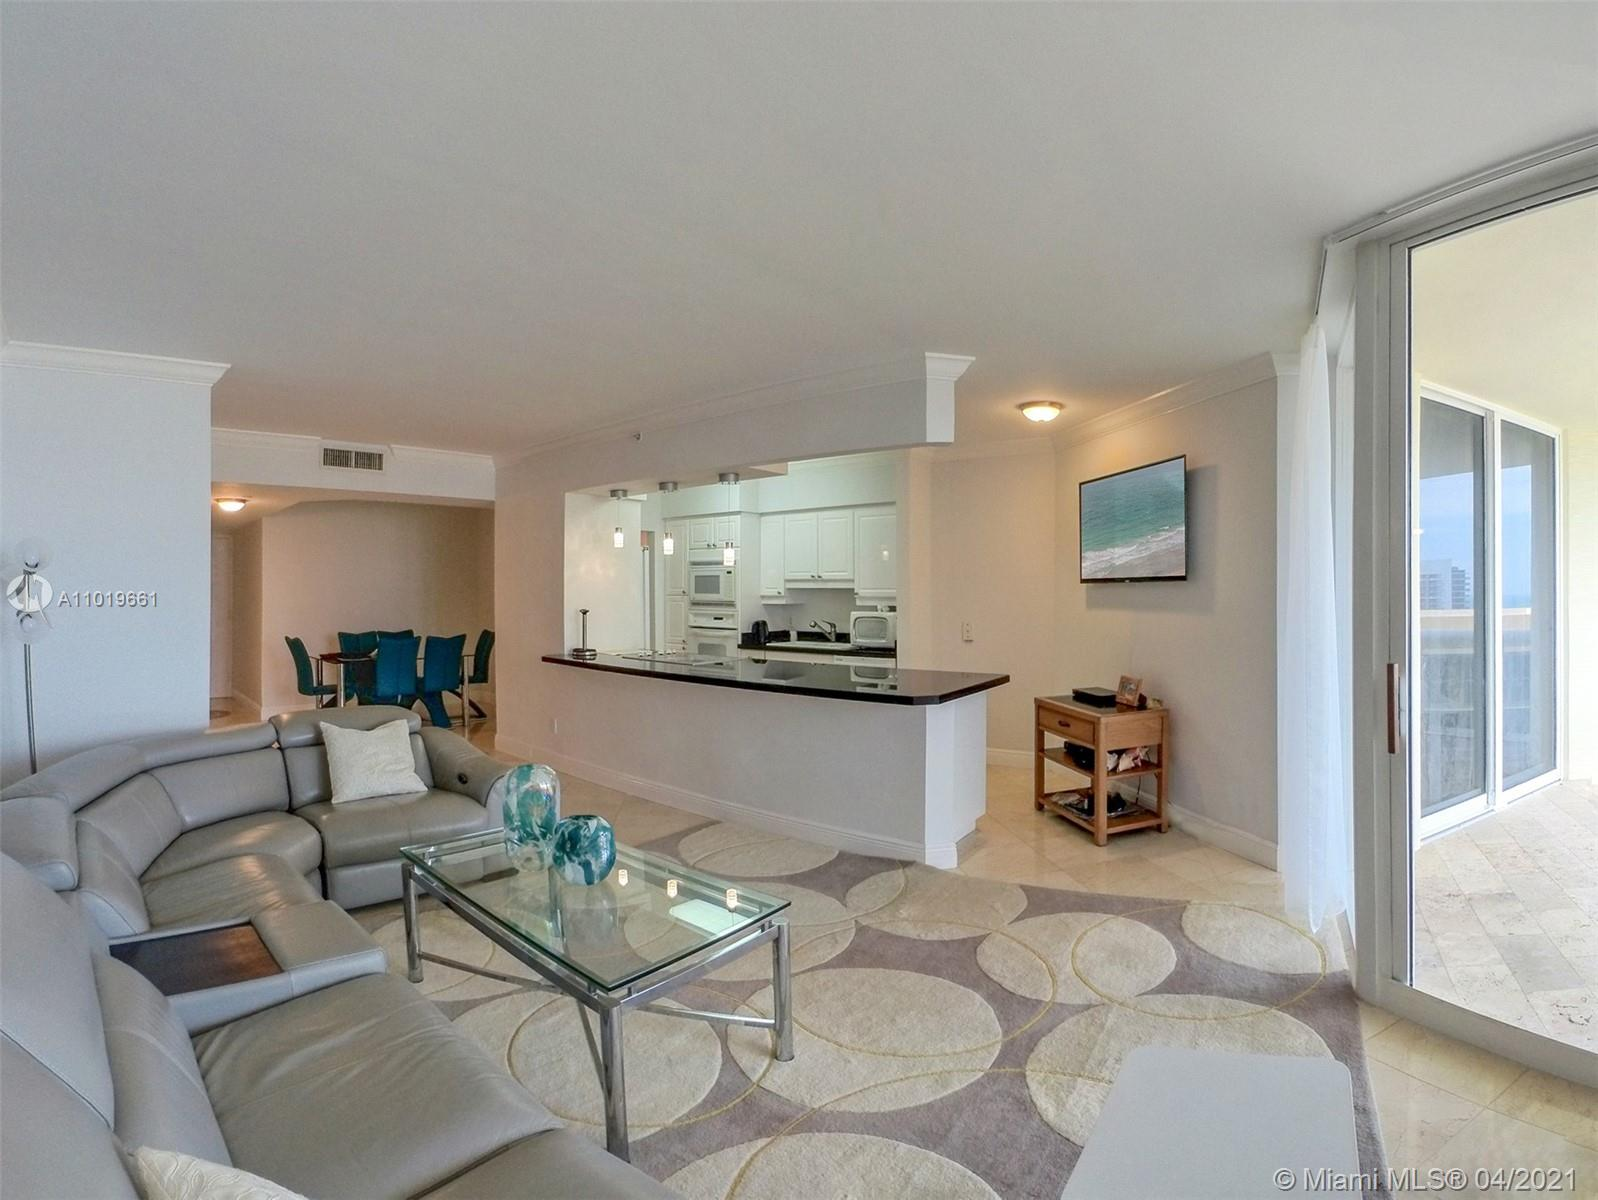 Enjoy 5 star resort amenities at the luxurious, refined beach front Green Diamond Condominium on Millionaire's Row in Miami Beach. This beautiful 1,490 sq.ft, 2 bedroom, 2 bath apartment features a large balcony with views of the ocean and intra-coastal and with access from the bedrooms and living room,  floor to ceiling windows, open kitchen with granite countertops, marble floors thru out, split floor plan, large master suite with walk-in closet and washer/dryer. Amenities include beach and pool attendants, gym, spa, tennis courts, free workout classes, large club house, restaurant with room service, theater room, game room, theater, kiddie play room, 24 hour security, valet, concierge, garage parking, and more.  Minutes from South Beach, the airport and Bal Harbour Shops.